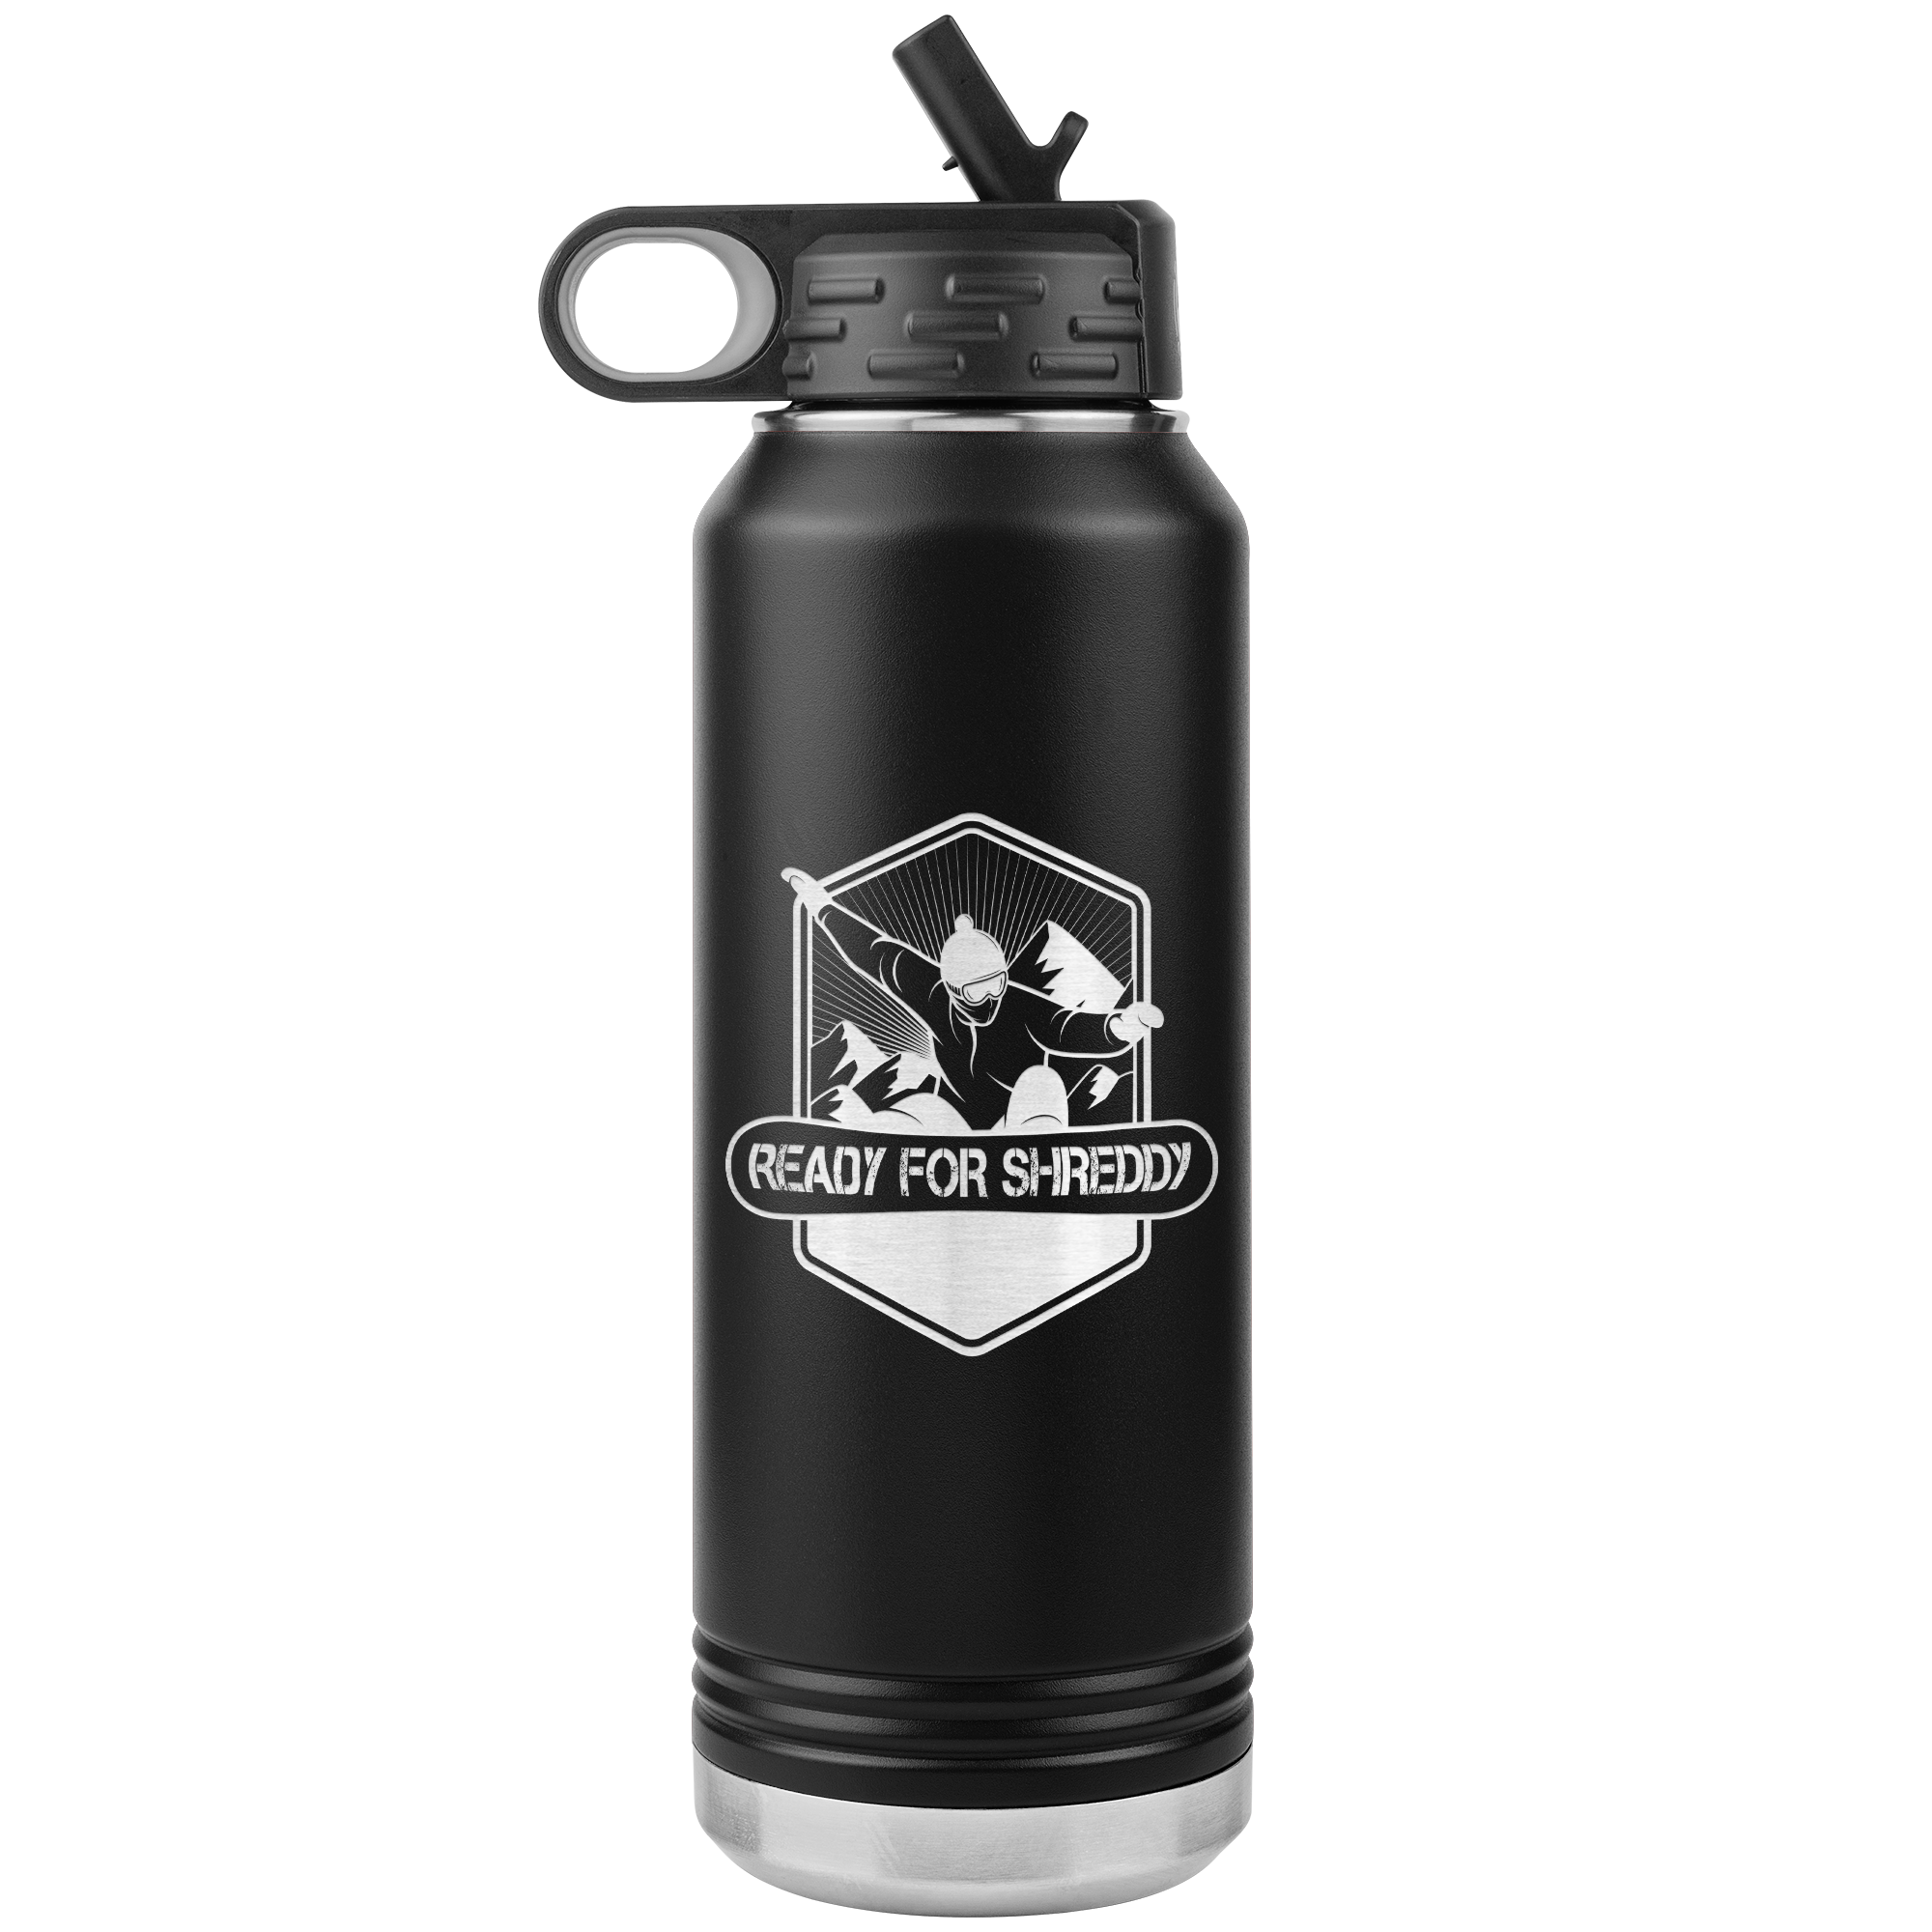 Ready For Shreddy Snowboard 32oz Water Bottle Tumbler